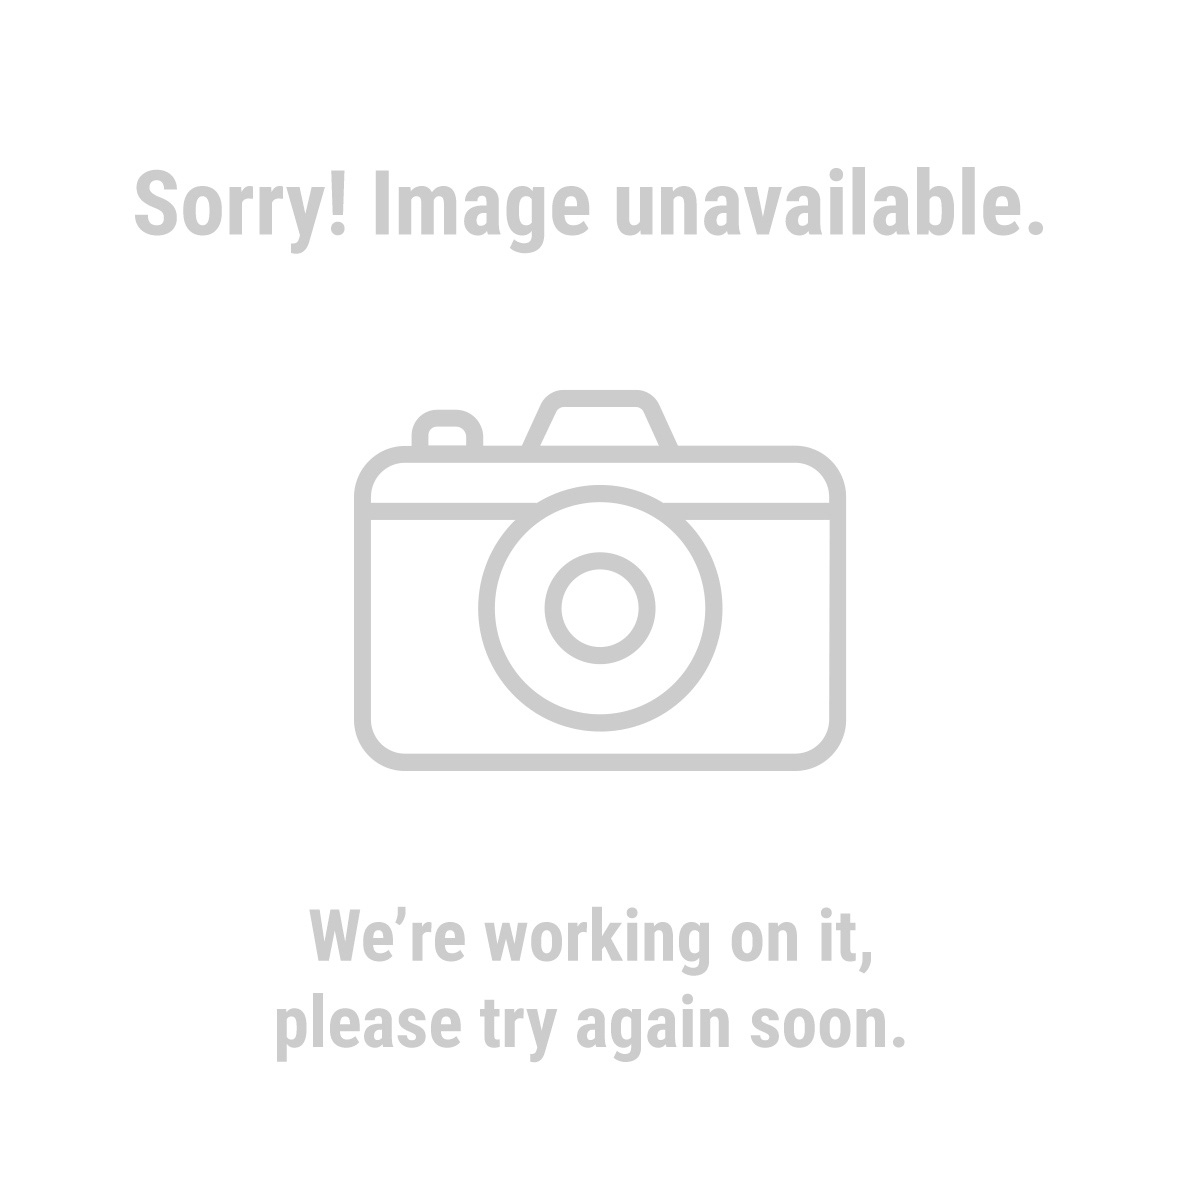 Badland Winches 61256 12000 lb. Off-Road Vehicle Winch with Automatic Load-Holding Brake